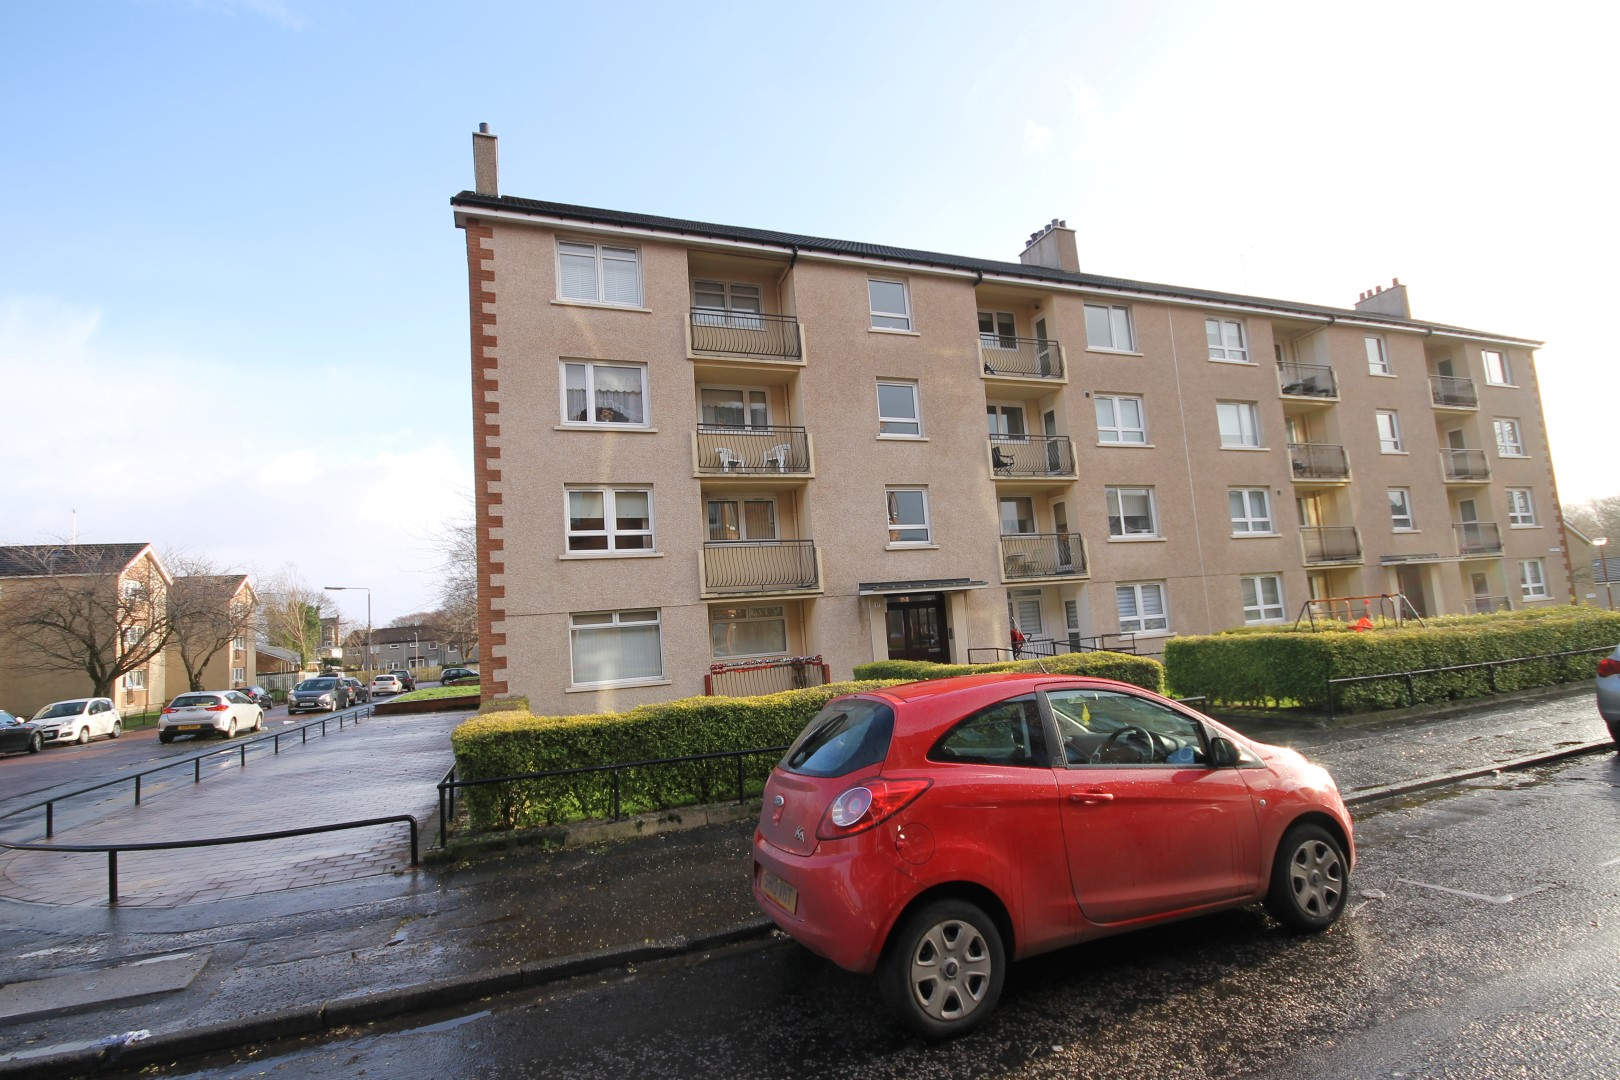 SANDYHILLS – 2 Bedroom Flat